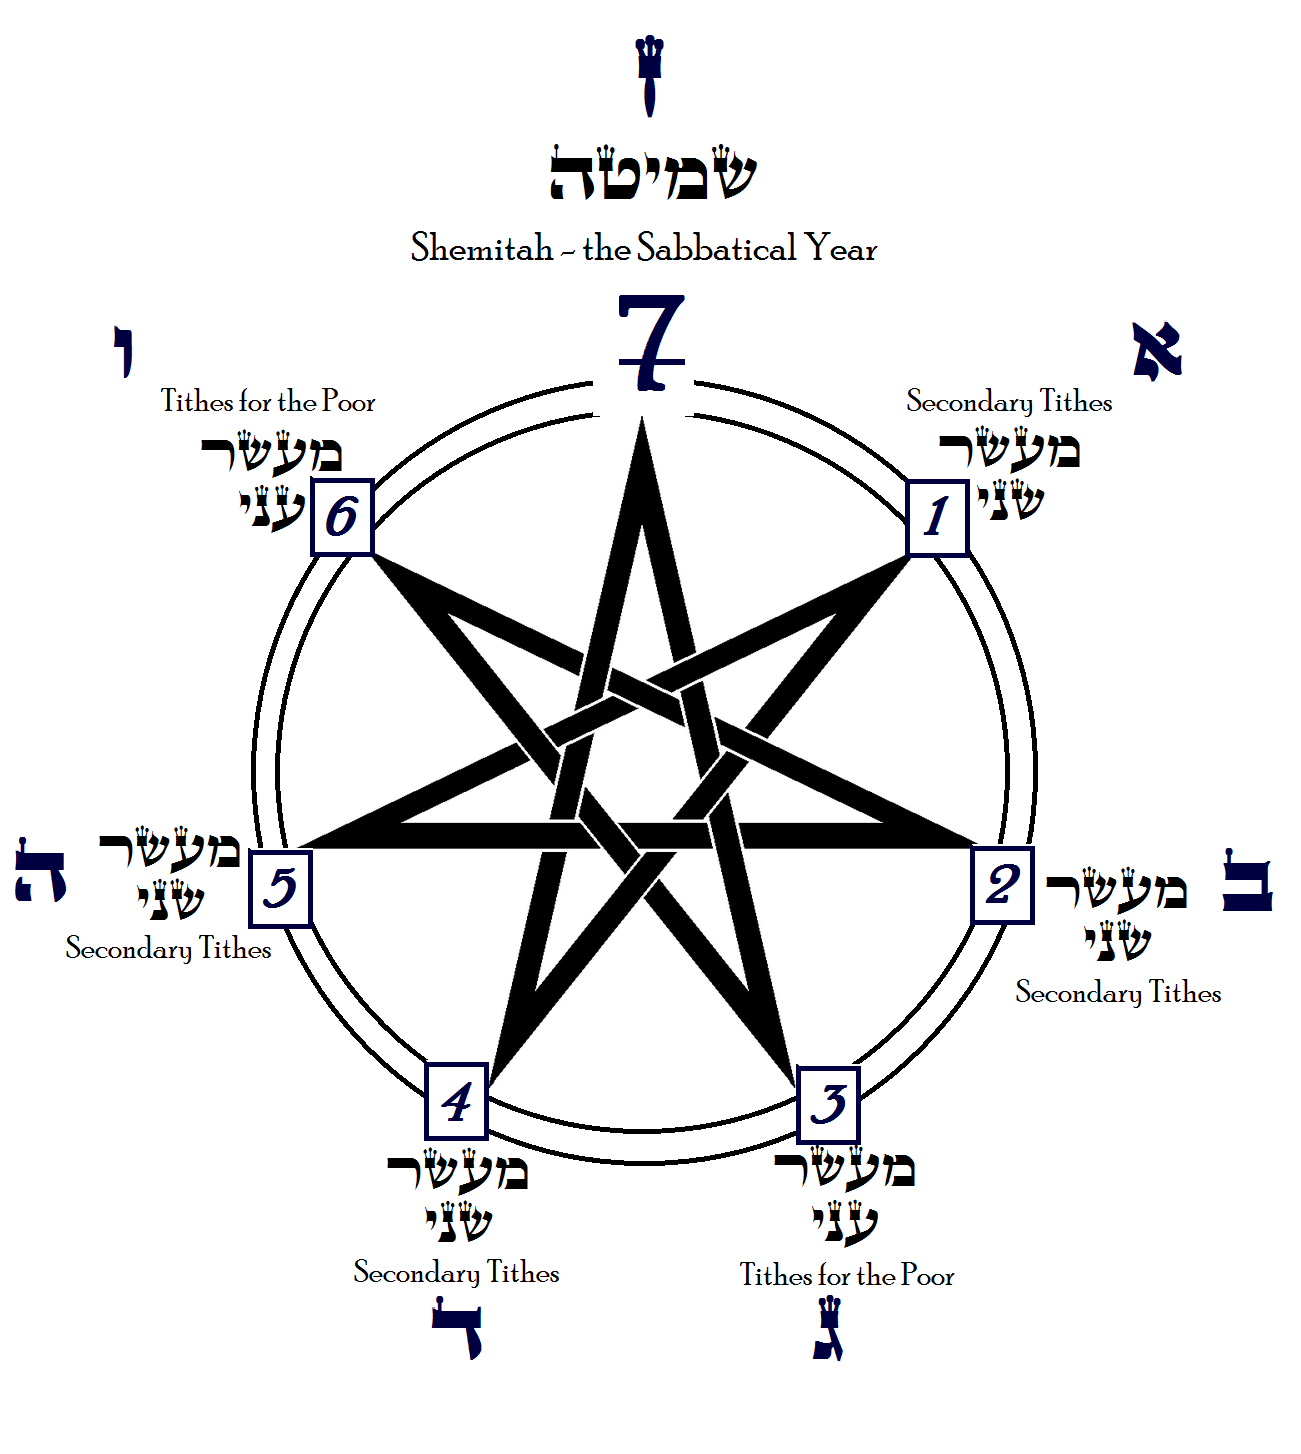 Shemitah Cycle, Graphic by Gedalyah Reback on behalf of the Walder Science Center